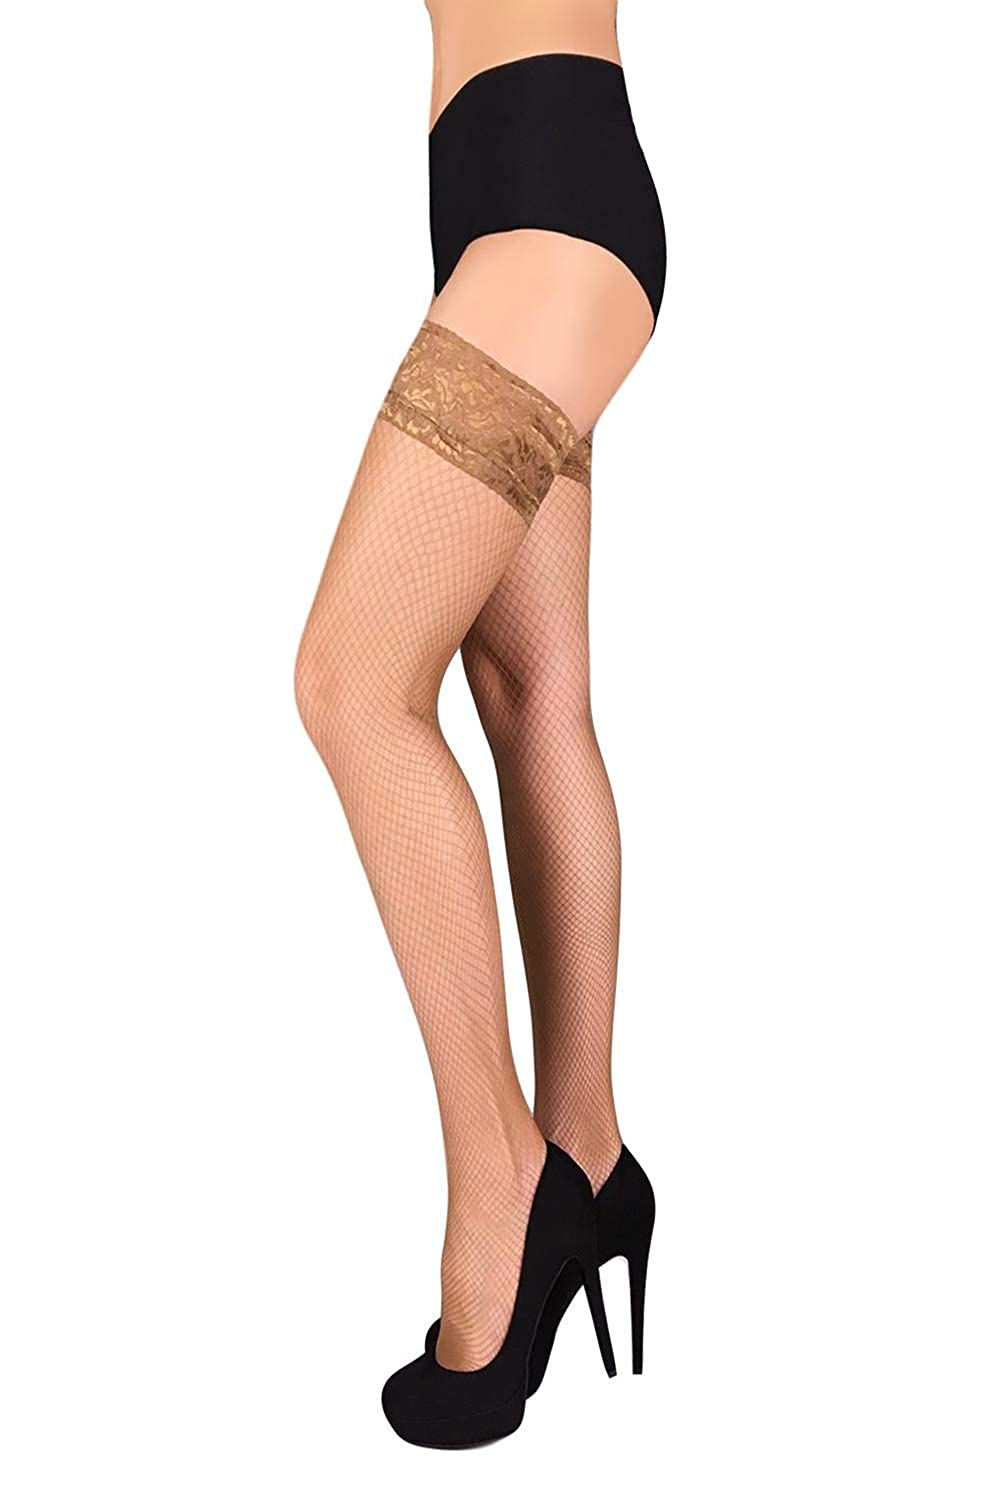 2ba316951fc Amazon.com  Fishnet Thigh High Stay up Stockings Lace Top Silicone Top  Nylon Hosiery  Clothing